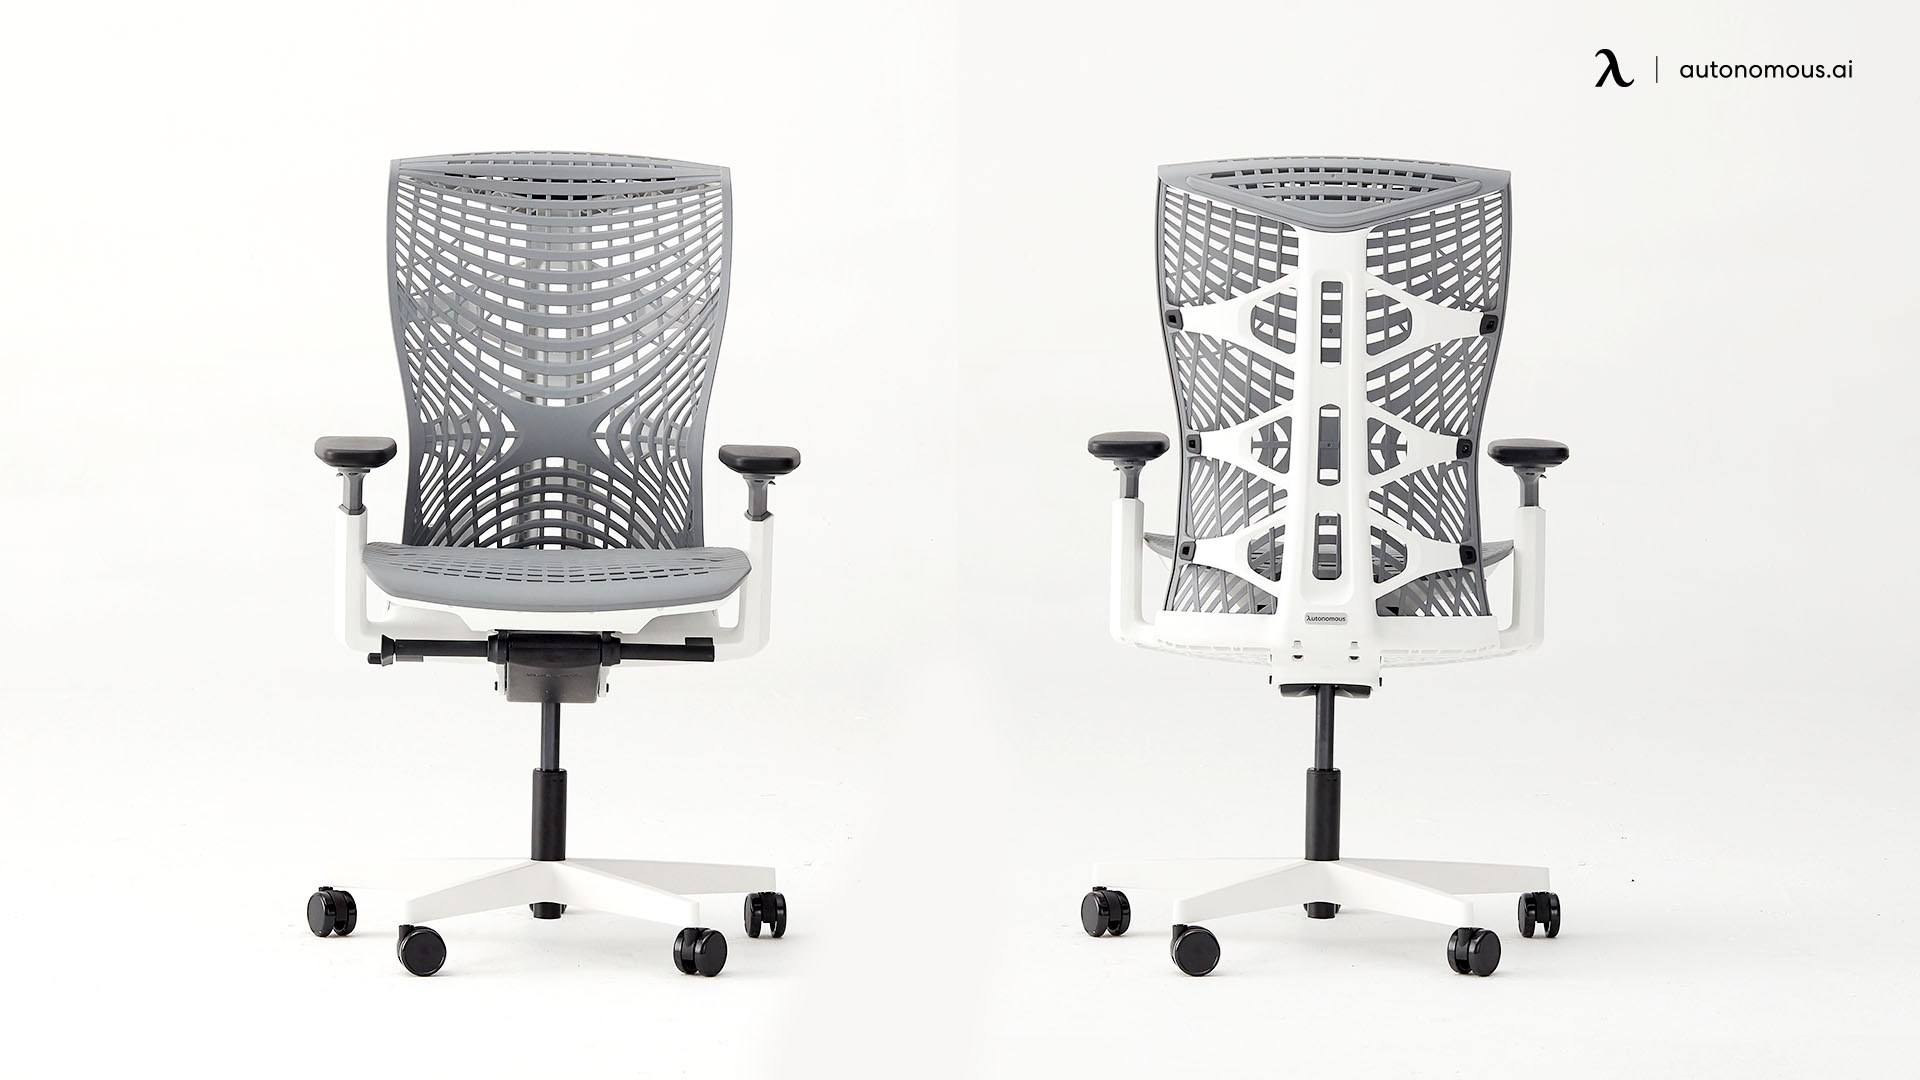 Top 5 pick chairs